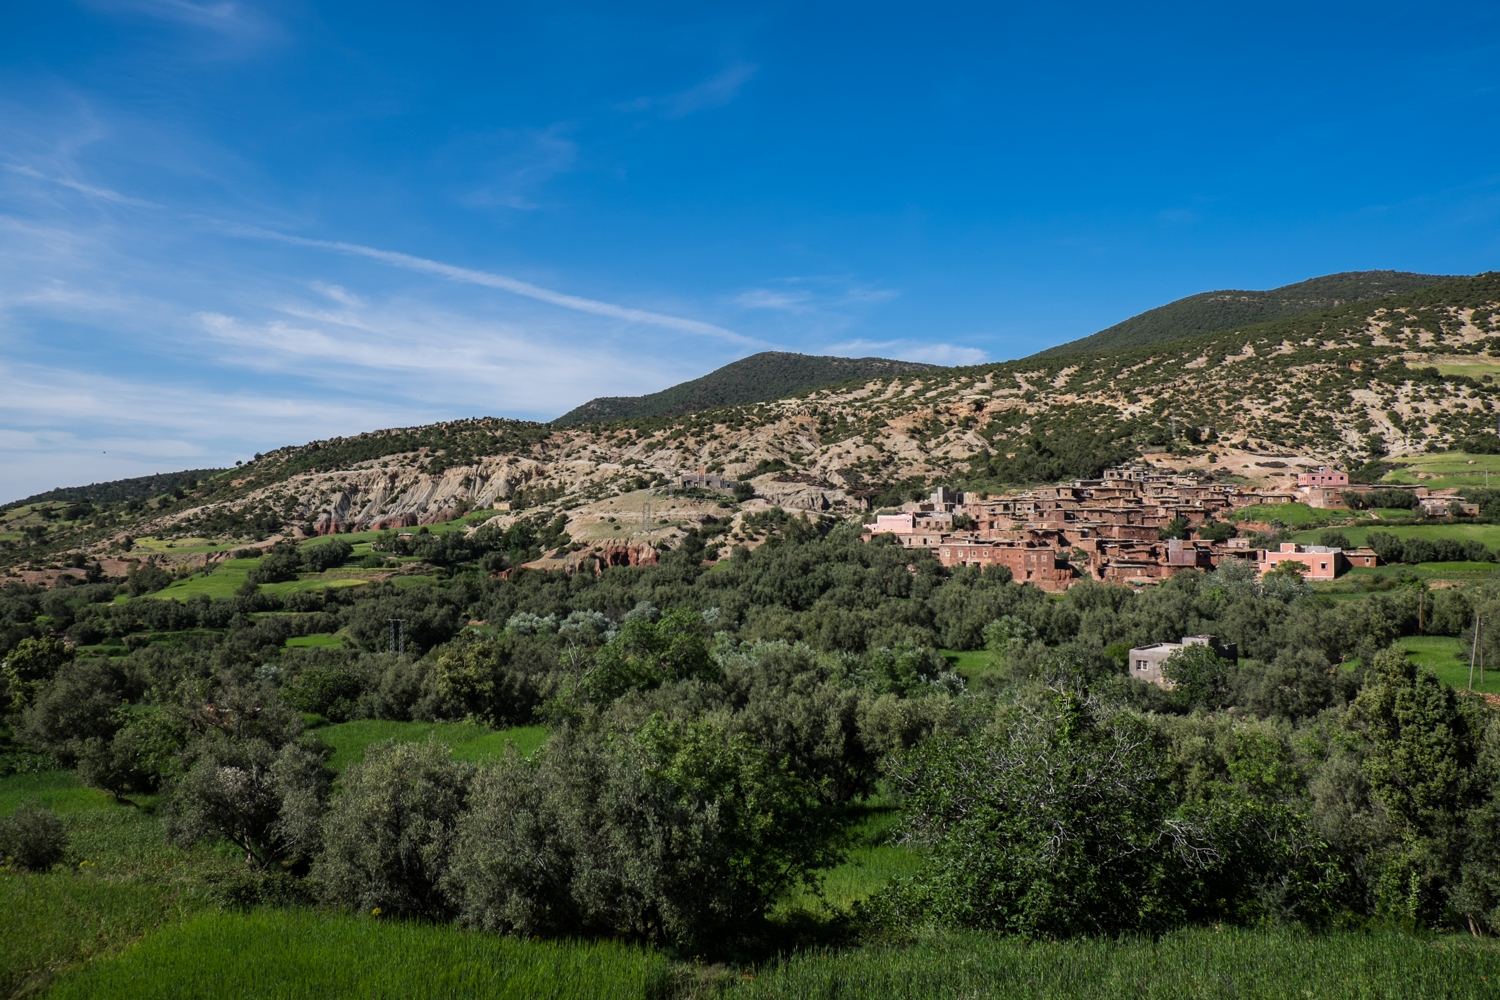 These photos were taken during a road trip through Morocco. We took off from Marrakech and some of the stops on our tour included locations like Ait-Benhaddou, Skoura, Gorges du Todra and Quarzazate.